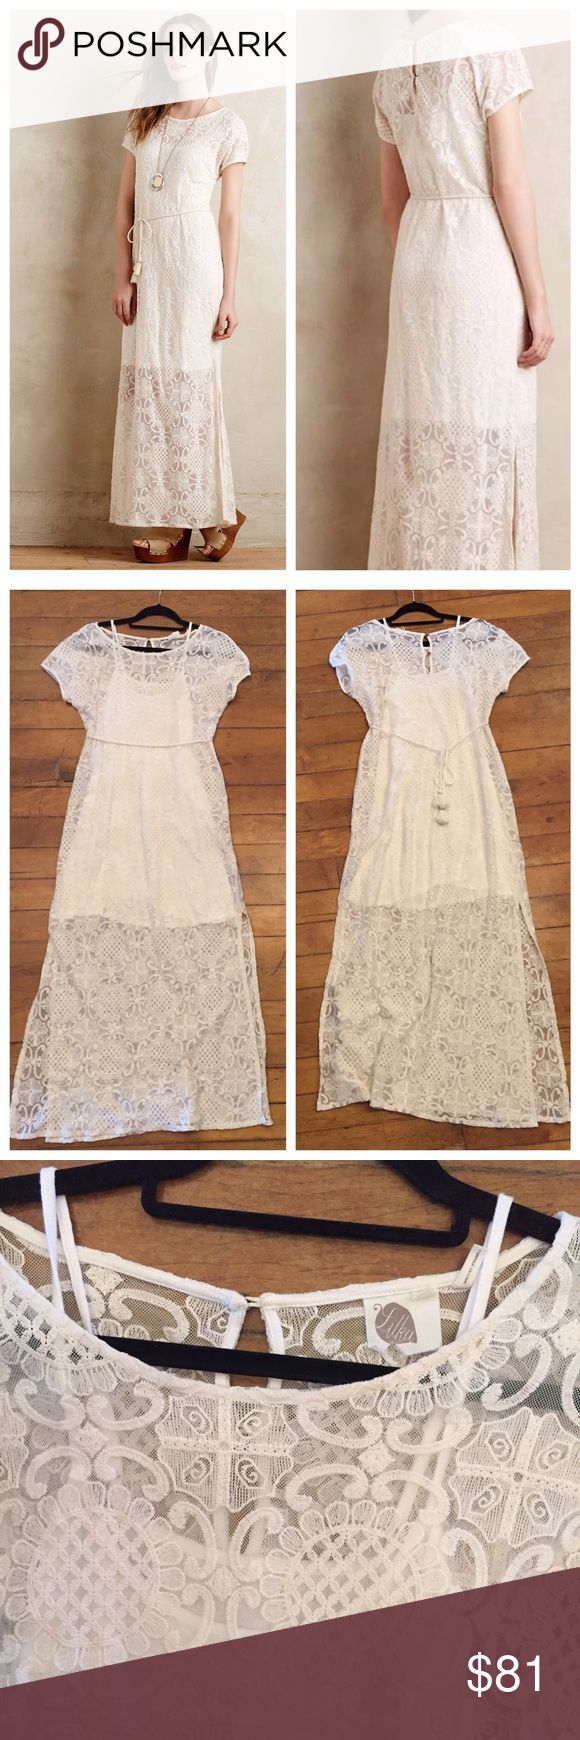 Anthropologie Brand Long Lace Maxi Dress Size S Anthropologie Brand called Lilka. ⚜️I love receiving offers through the offer button!⚜️ Great condition, as seen in pictures! Fast same or next day shipping!📨 Open to offers but I don't negotiate in the comments so please use the offer button😊 Anthropologie Dresses Maxi